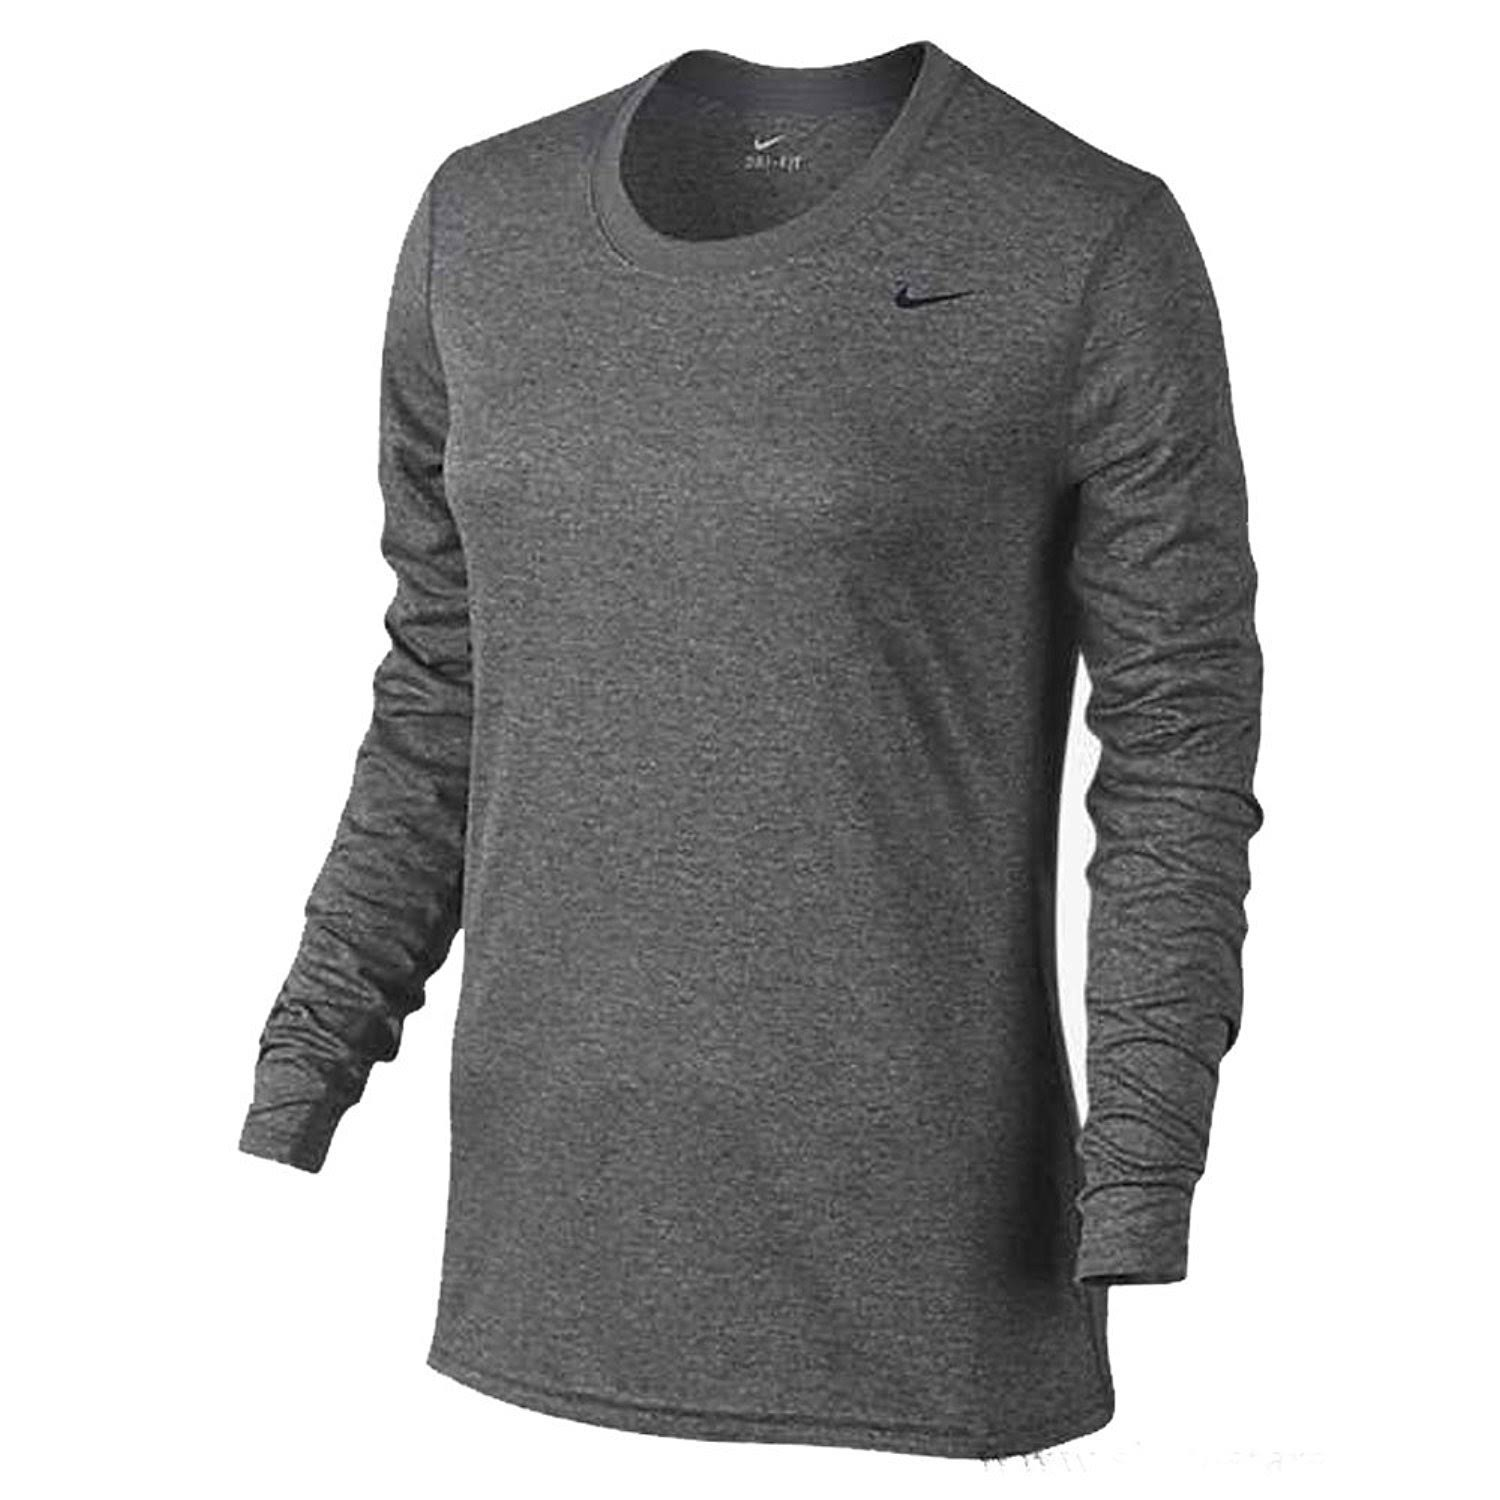 Nike Womens Long Sleeve Legend Shirt